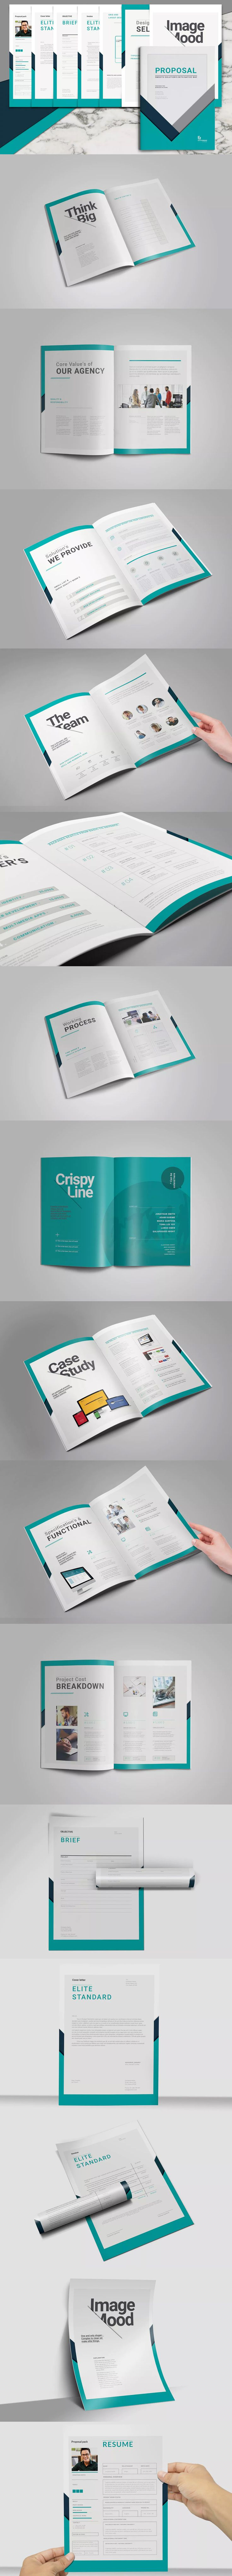 Proposal Pitch Pack Template InDesign INDD A4